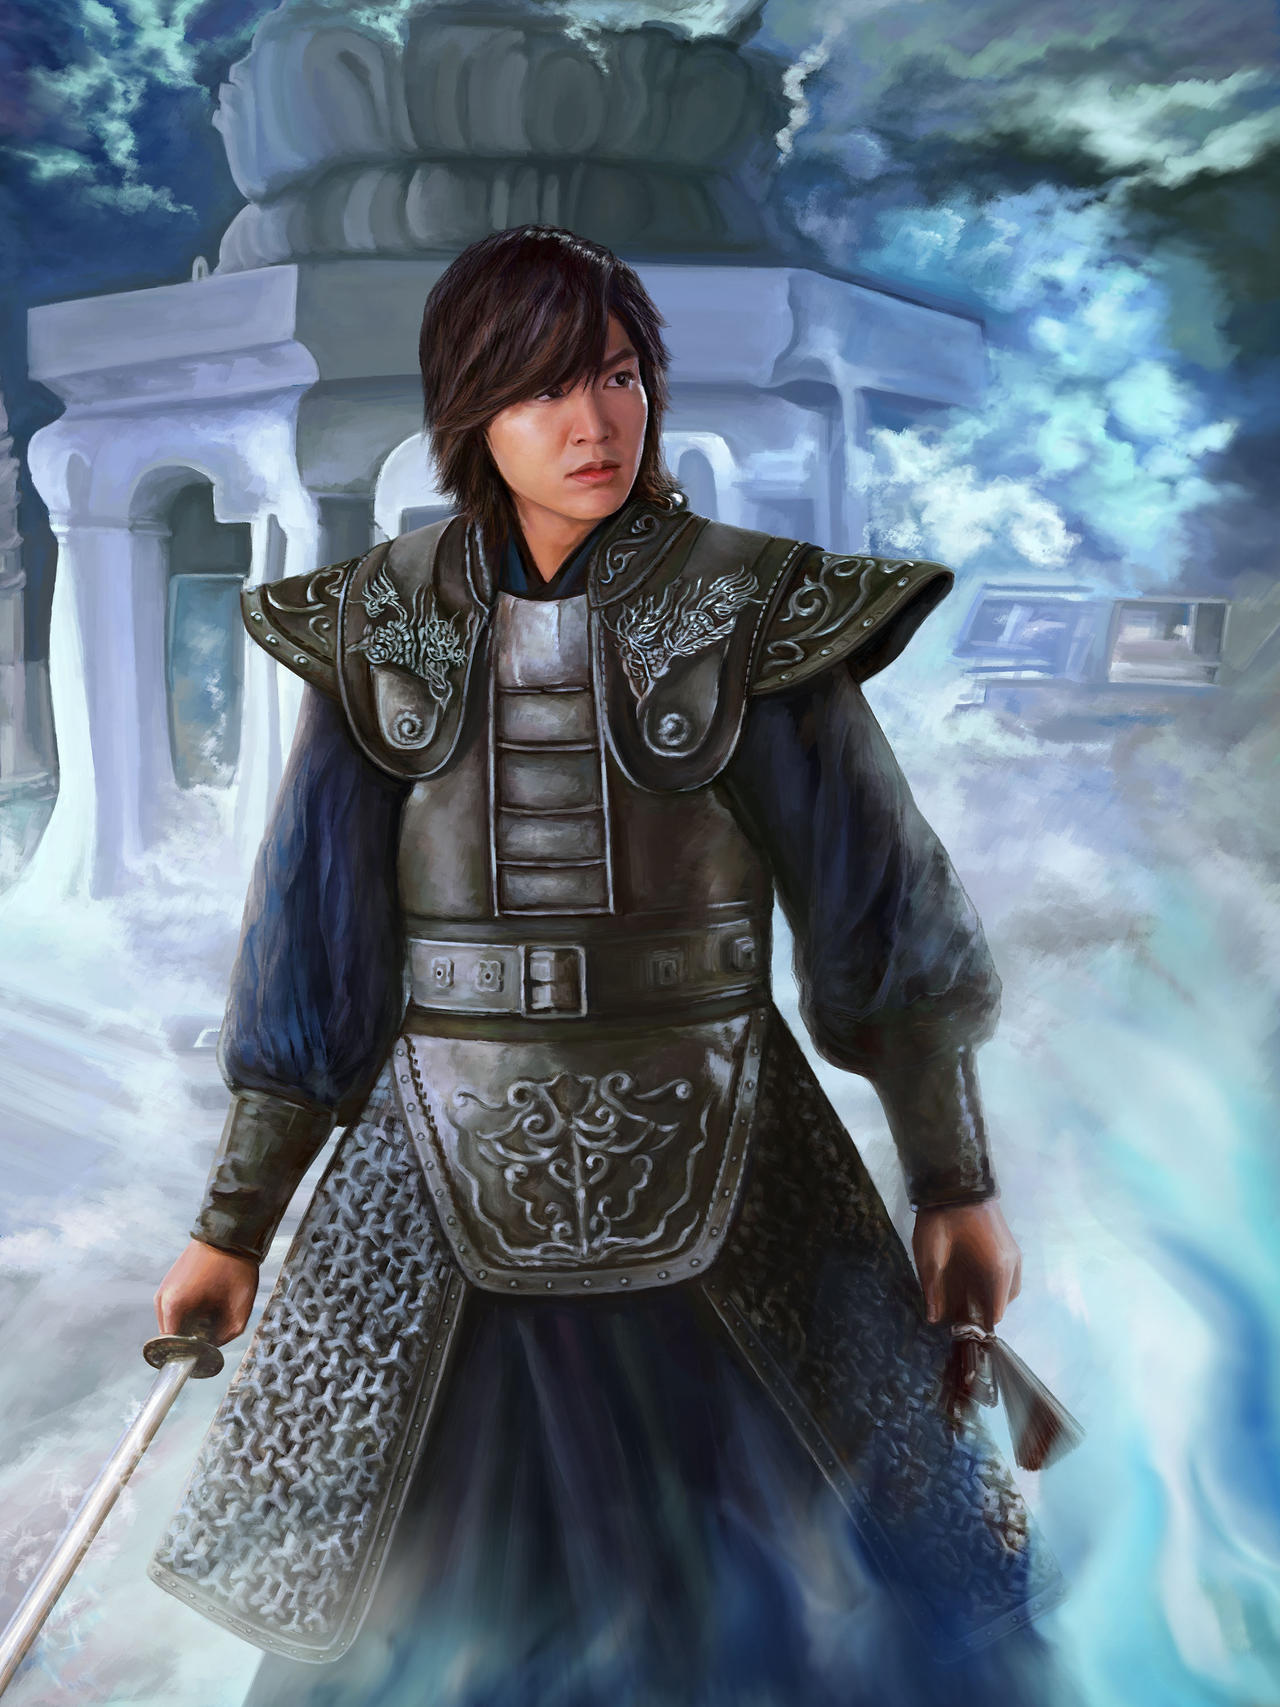 Choi Young: Faith by Vilenchik on DeviantArt